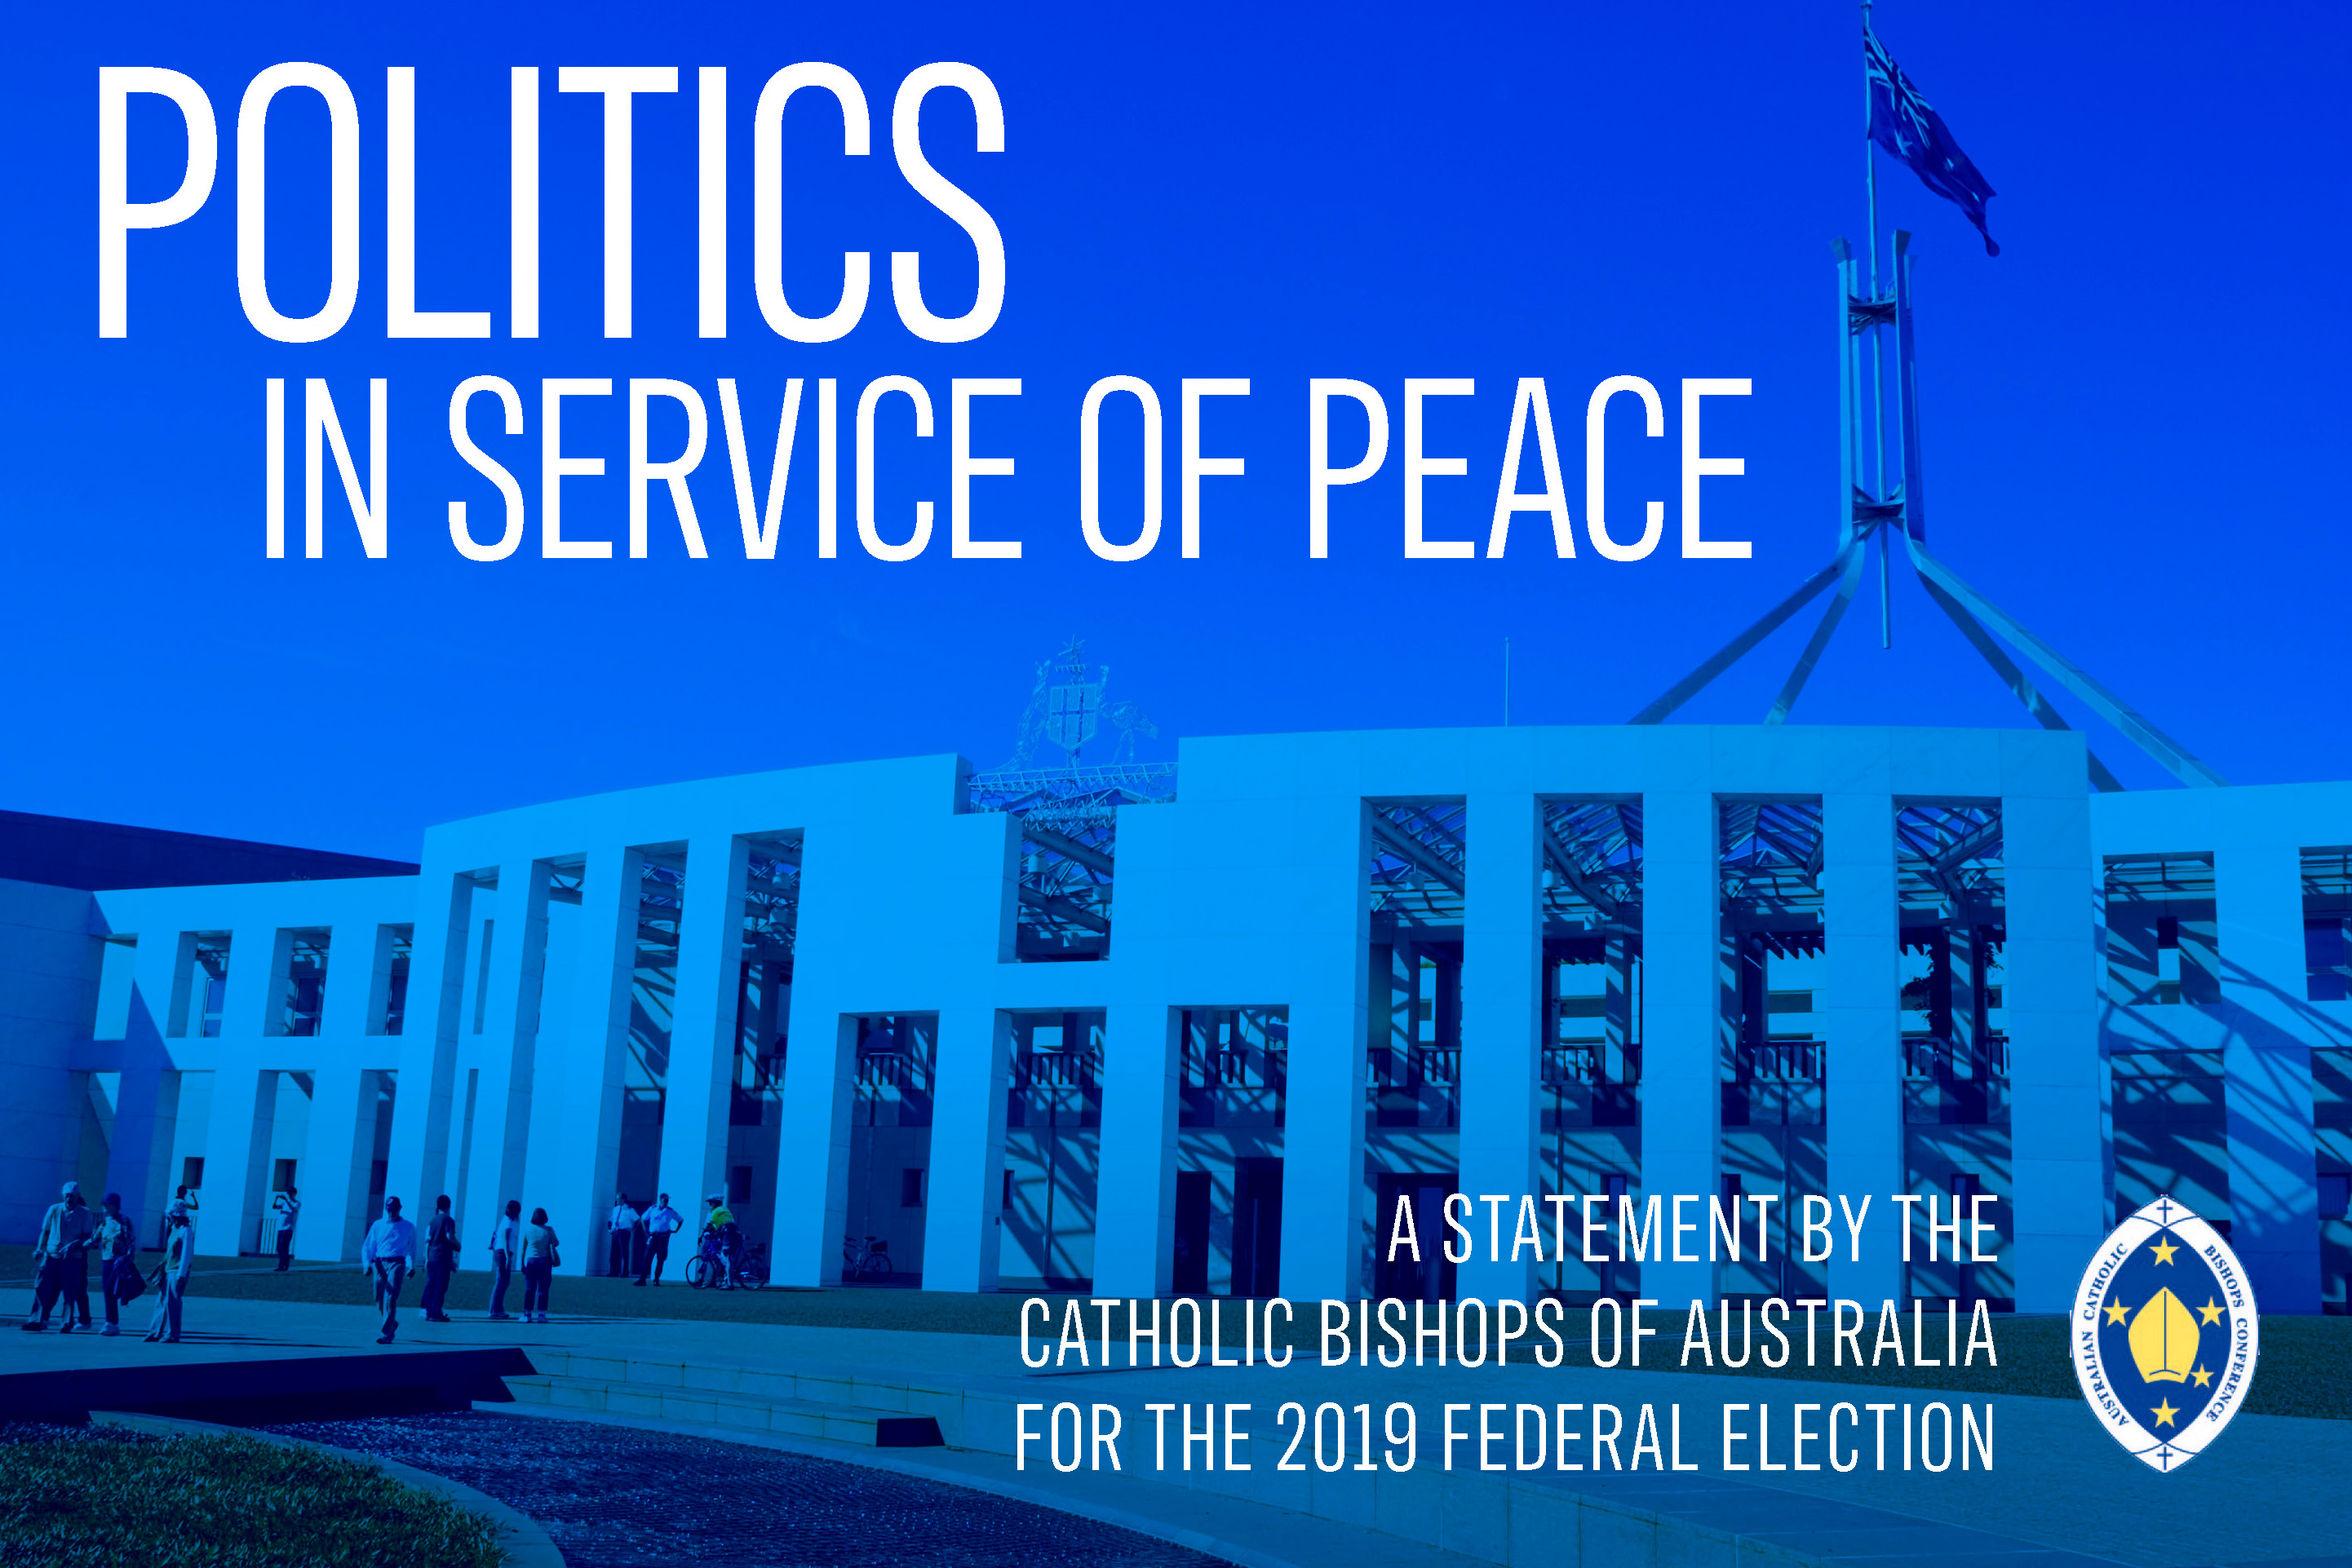 Australia's Catholic bishops have this week called for respect and understanding in the federal election campaign. Image: Supplied.